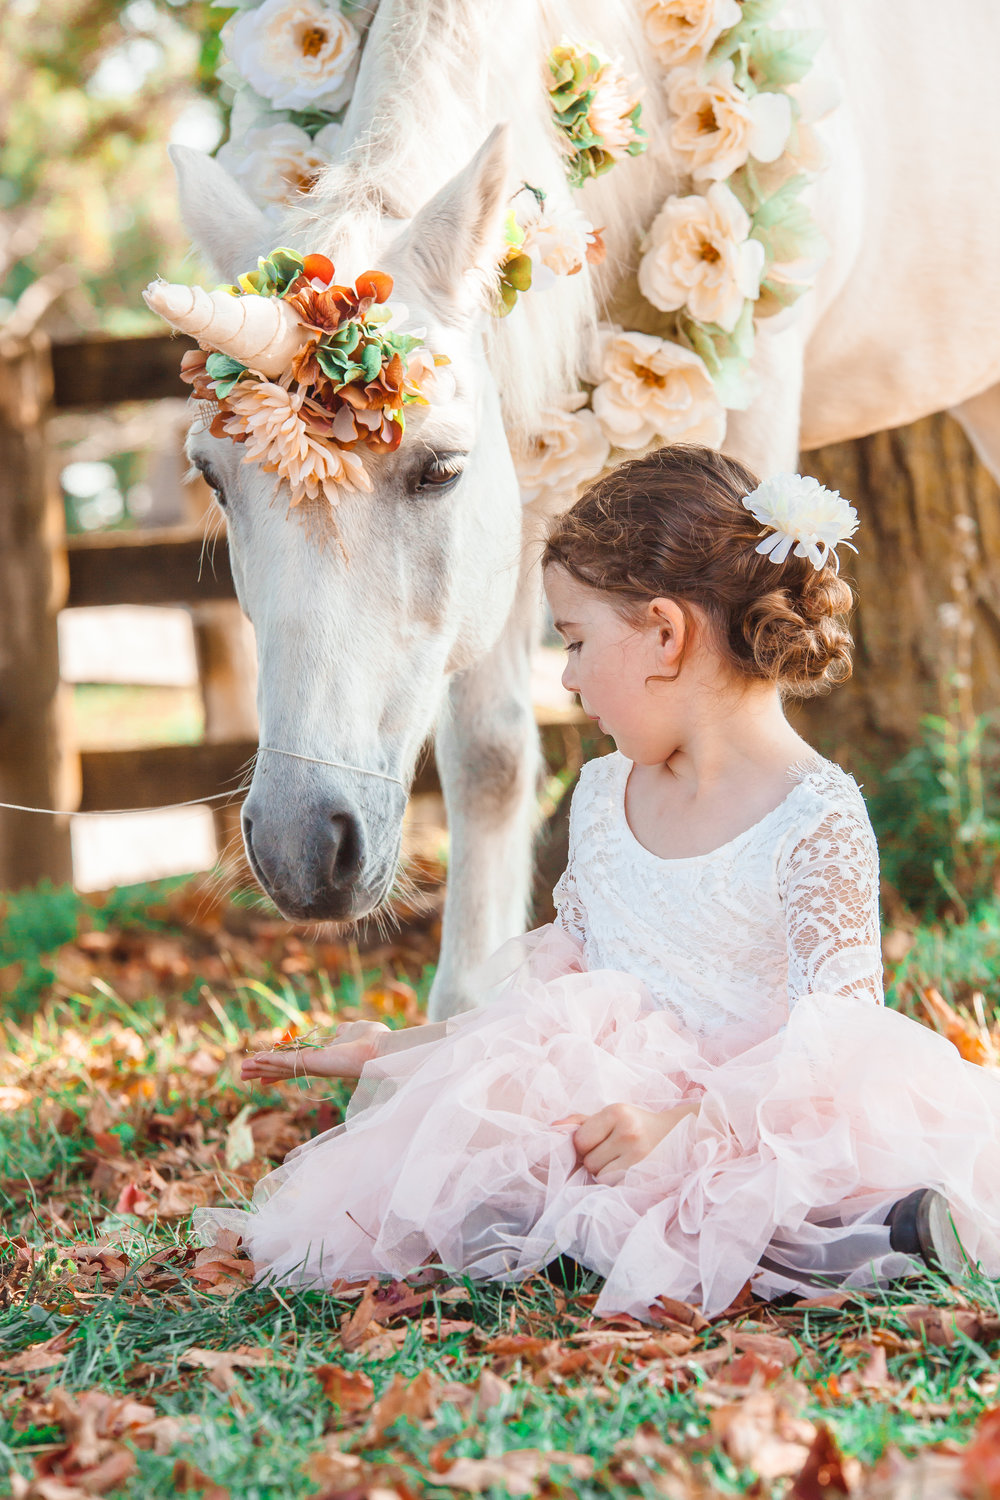 Amy D Photography Barrie Family & Children Photography Unicorn Mini Session-17.jpg